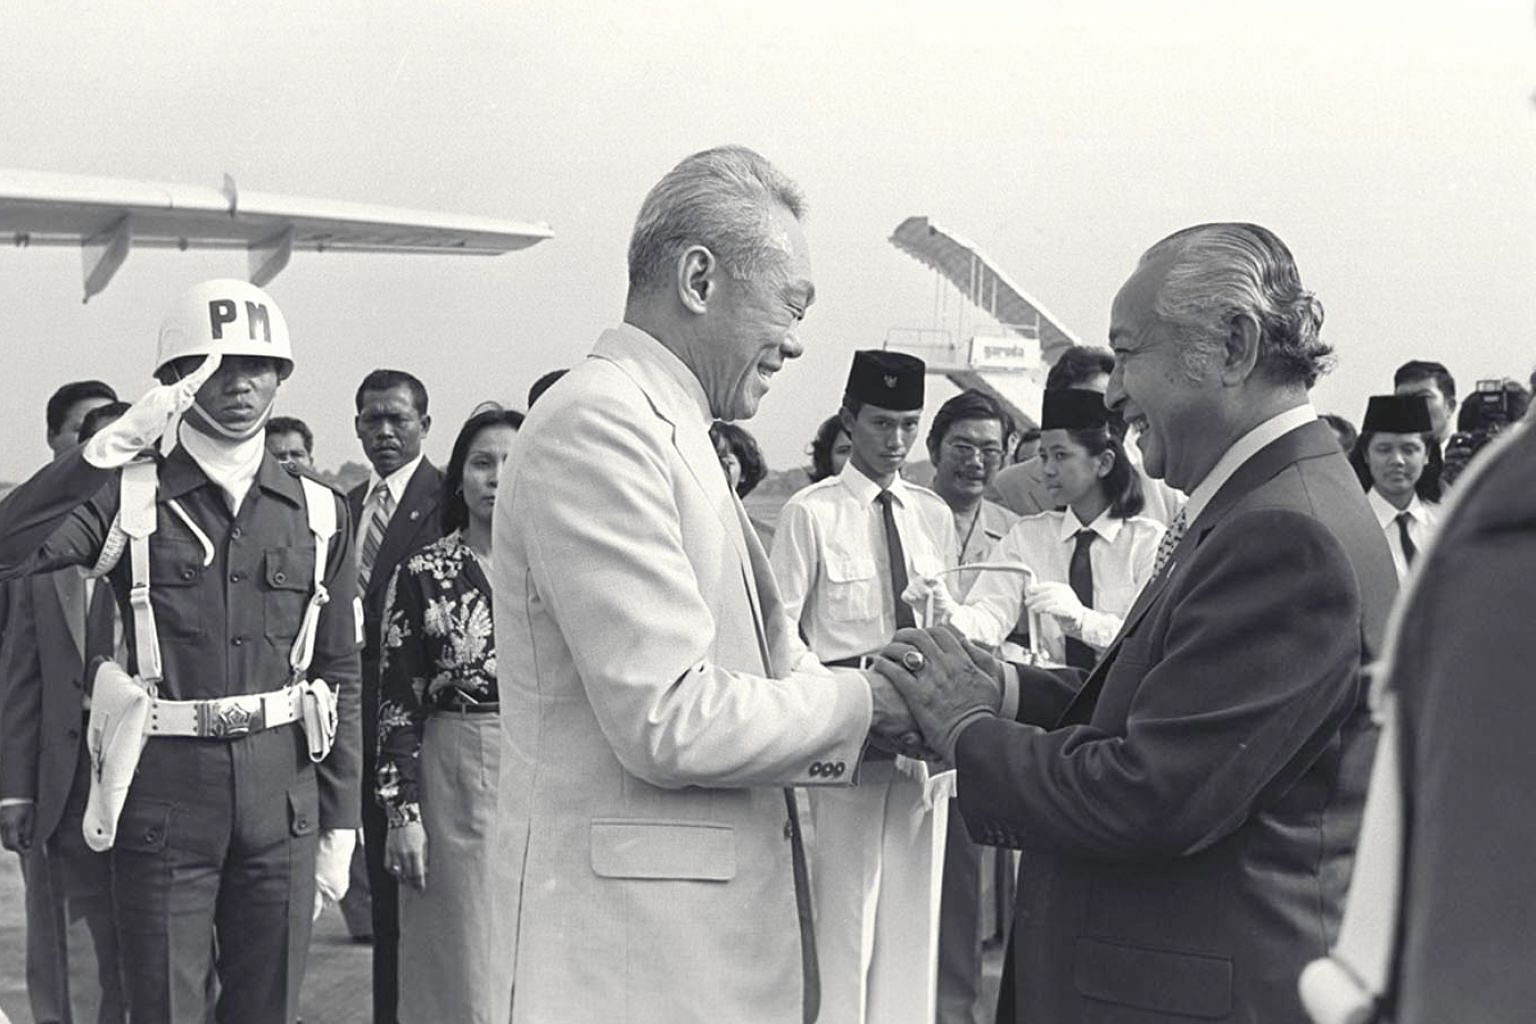 """When Mr Lee Kuan Yew was Prime Minister of Singapore, he built a strong friendship with Indonesian President Suharto that """"overcame the many prejudices between Singaporeans of Chinese descent and Indonesians"""". According to Mr Lee's memoirs, they met"""